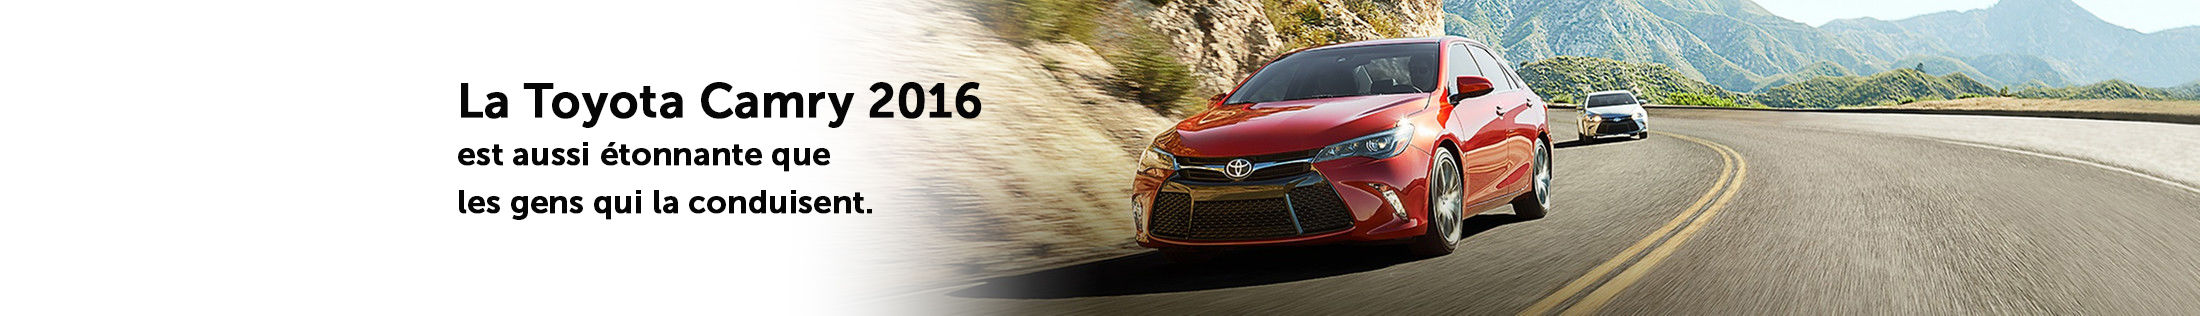 Promotions Camry 2016